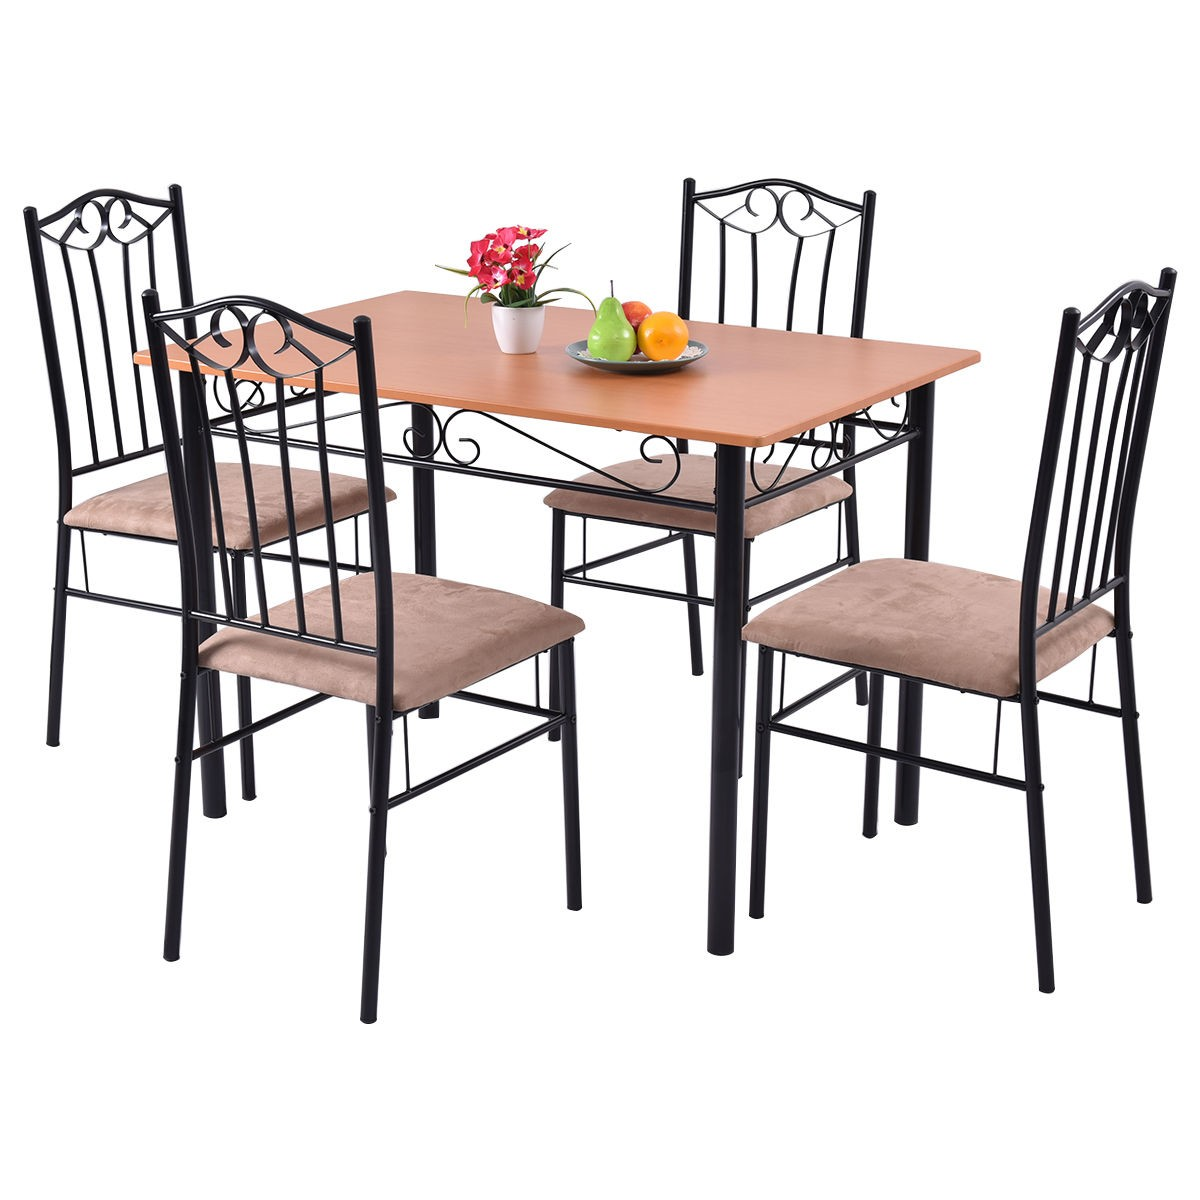 5 Pc Dining Set Wood Metal Table And 4 Chairs Kitchen